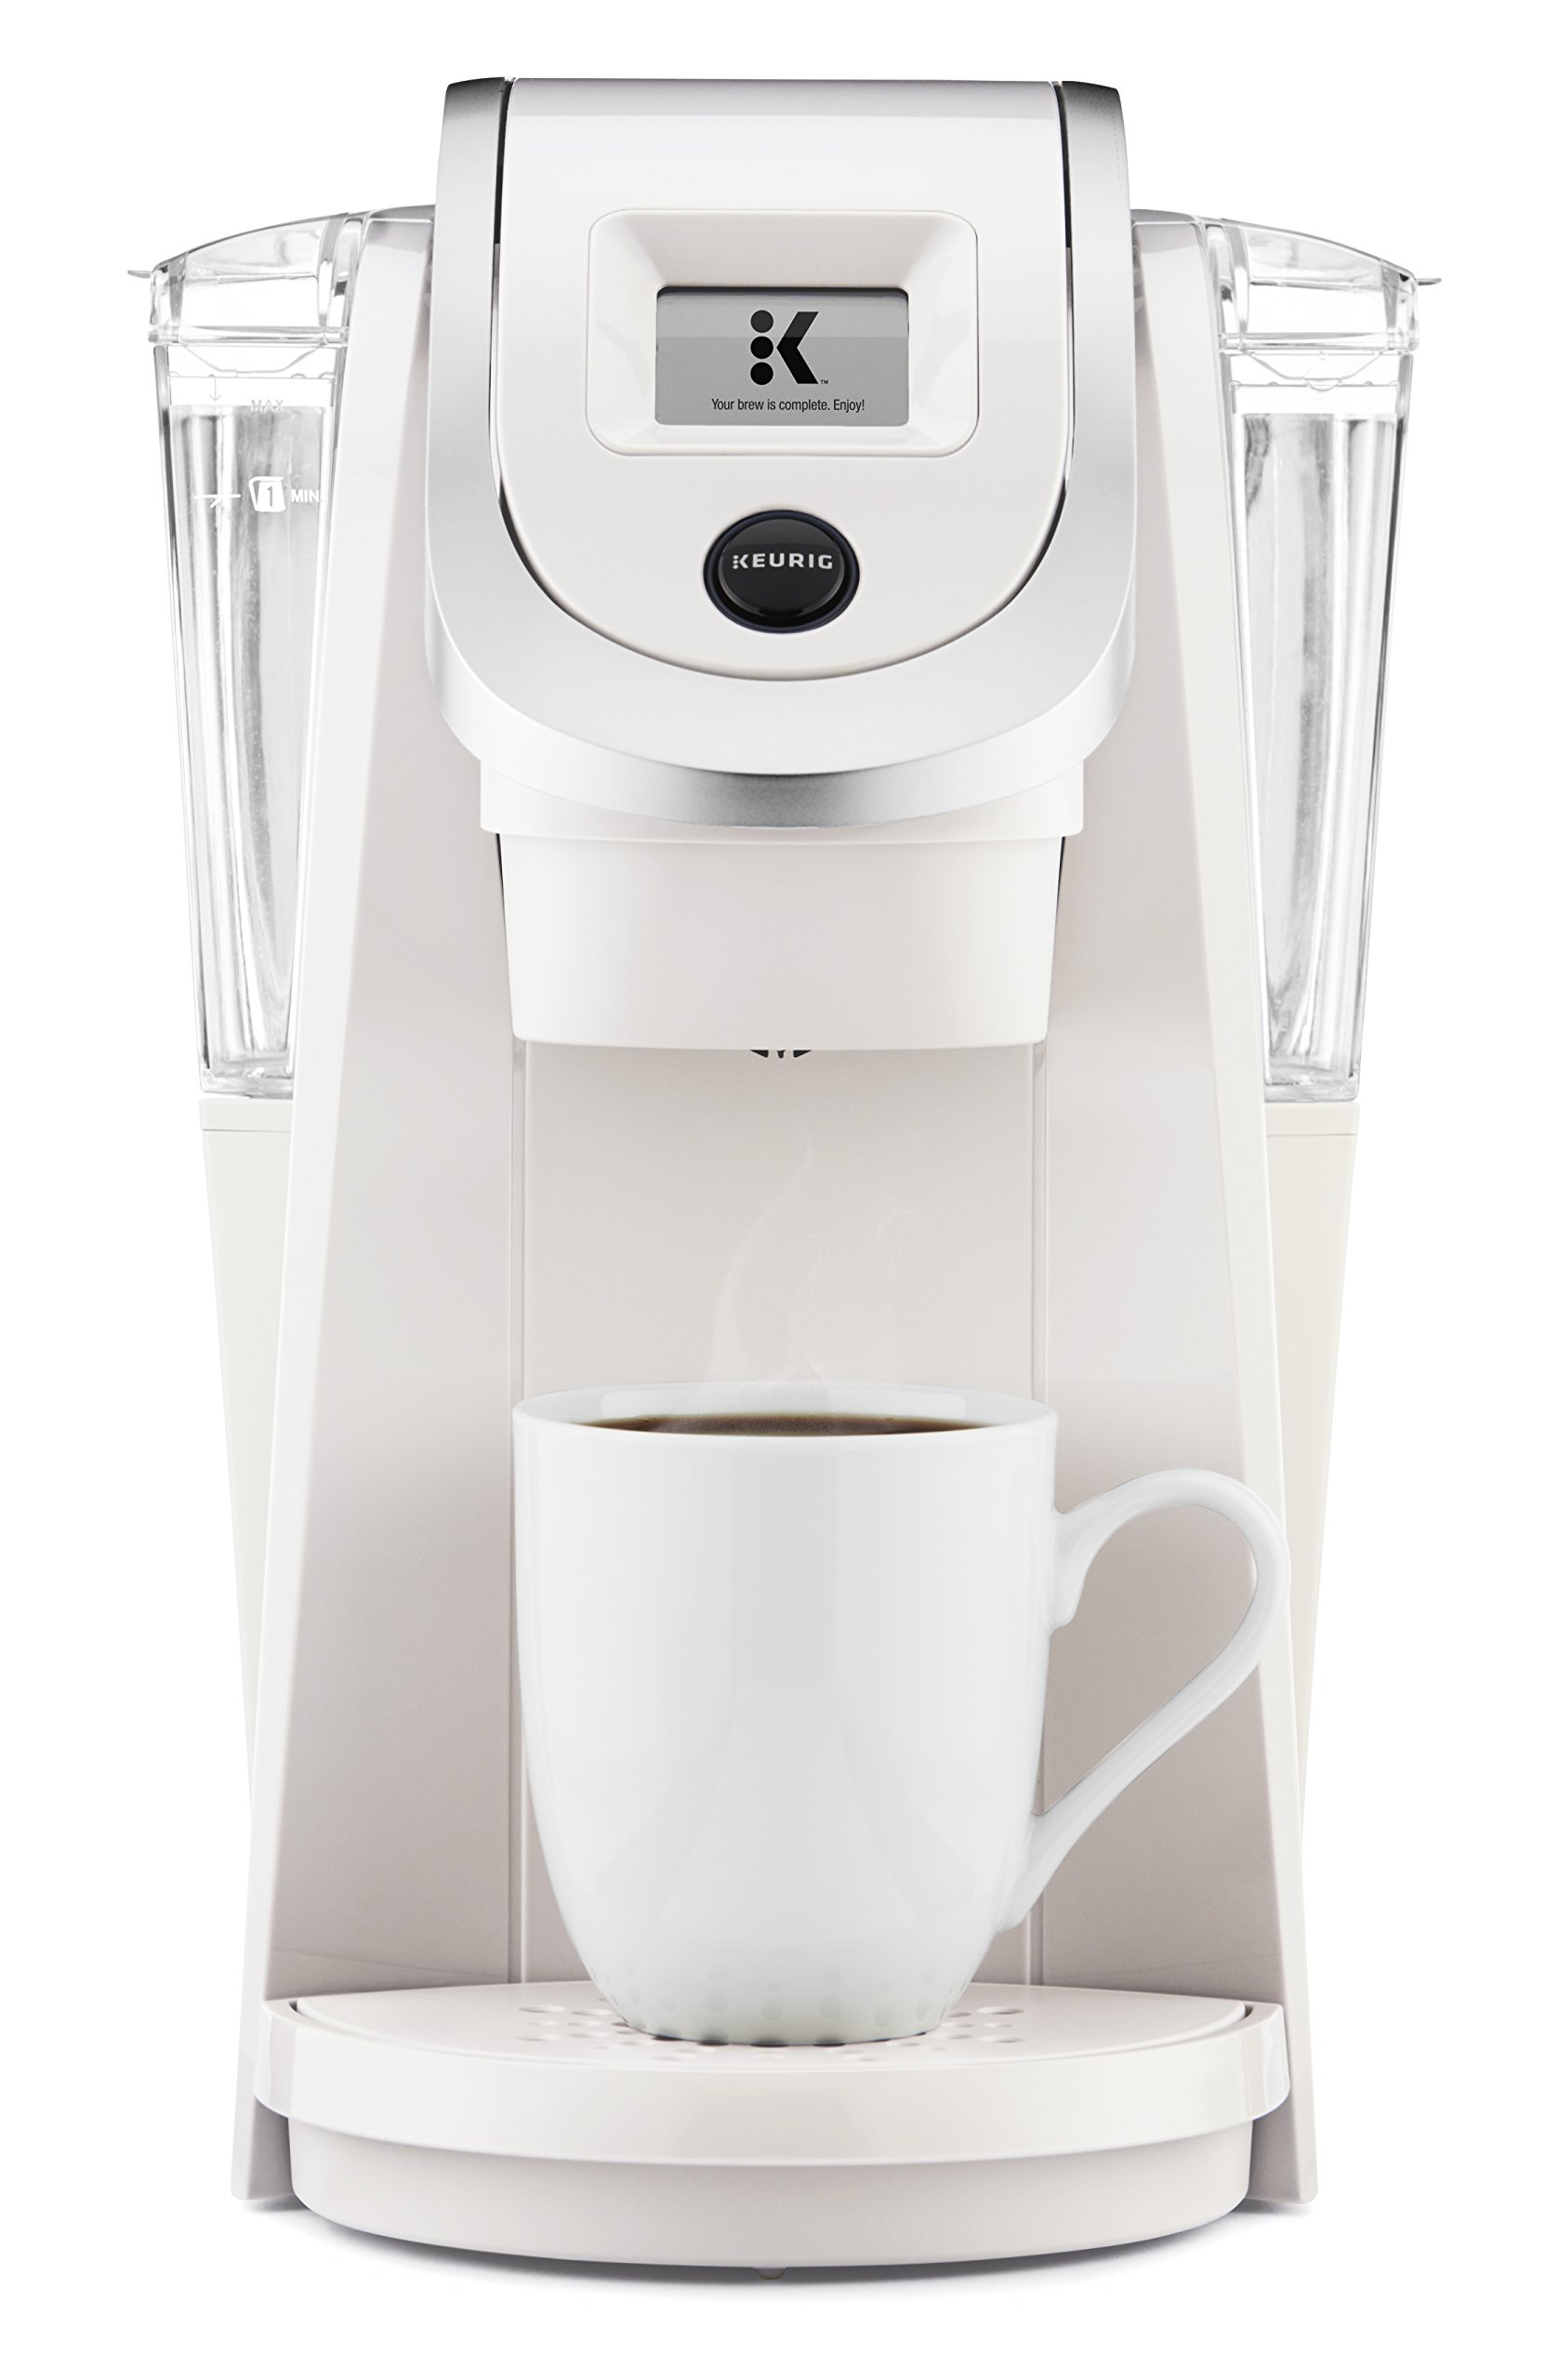 Keurig K250 Single Serve, Programmable K-Cup Pod Coffee Maker with strength control, Sandy Pearl by Keurig (Image #1)